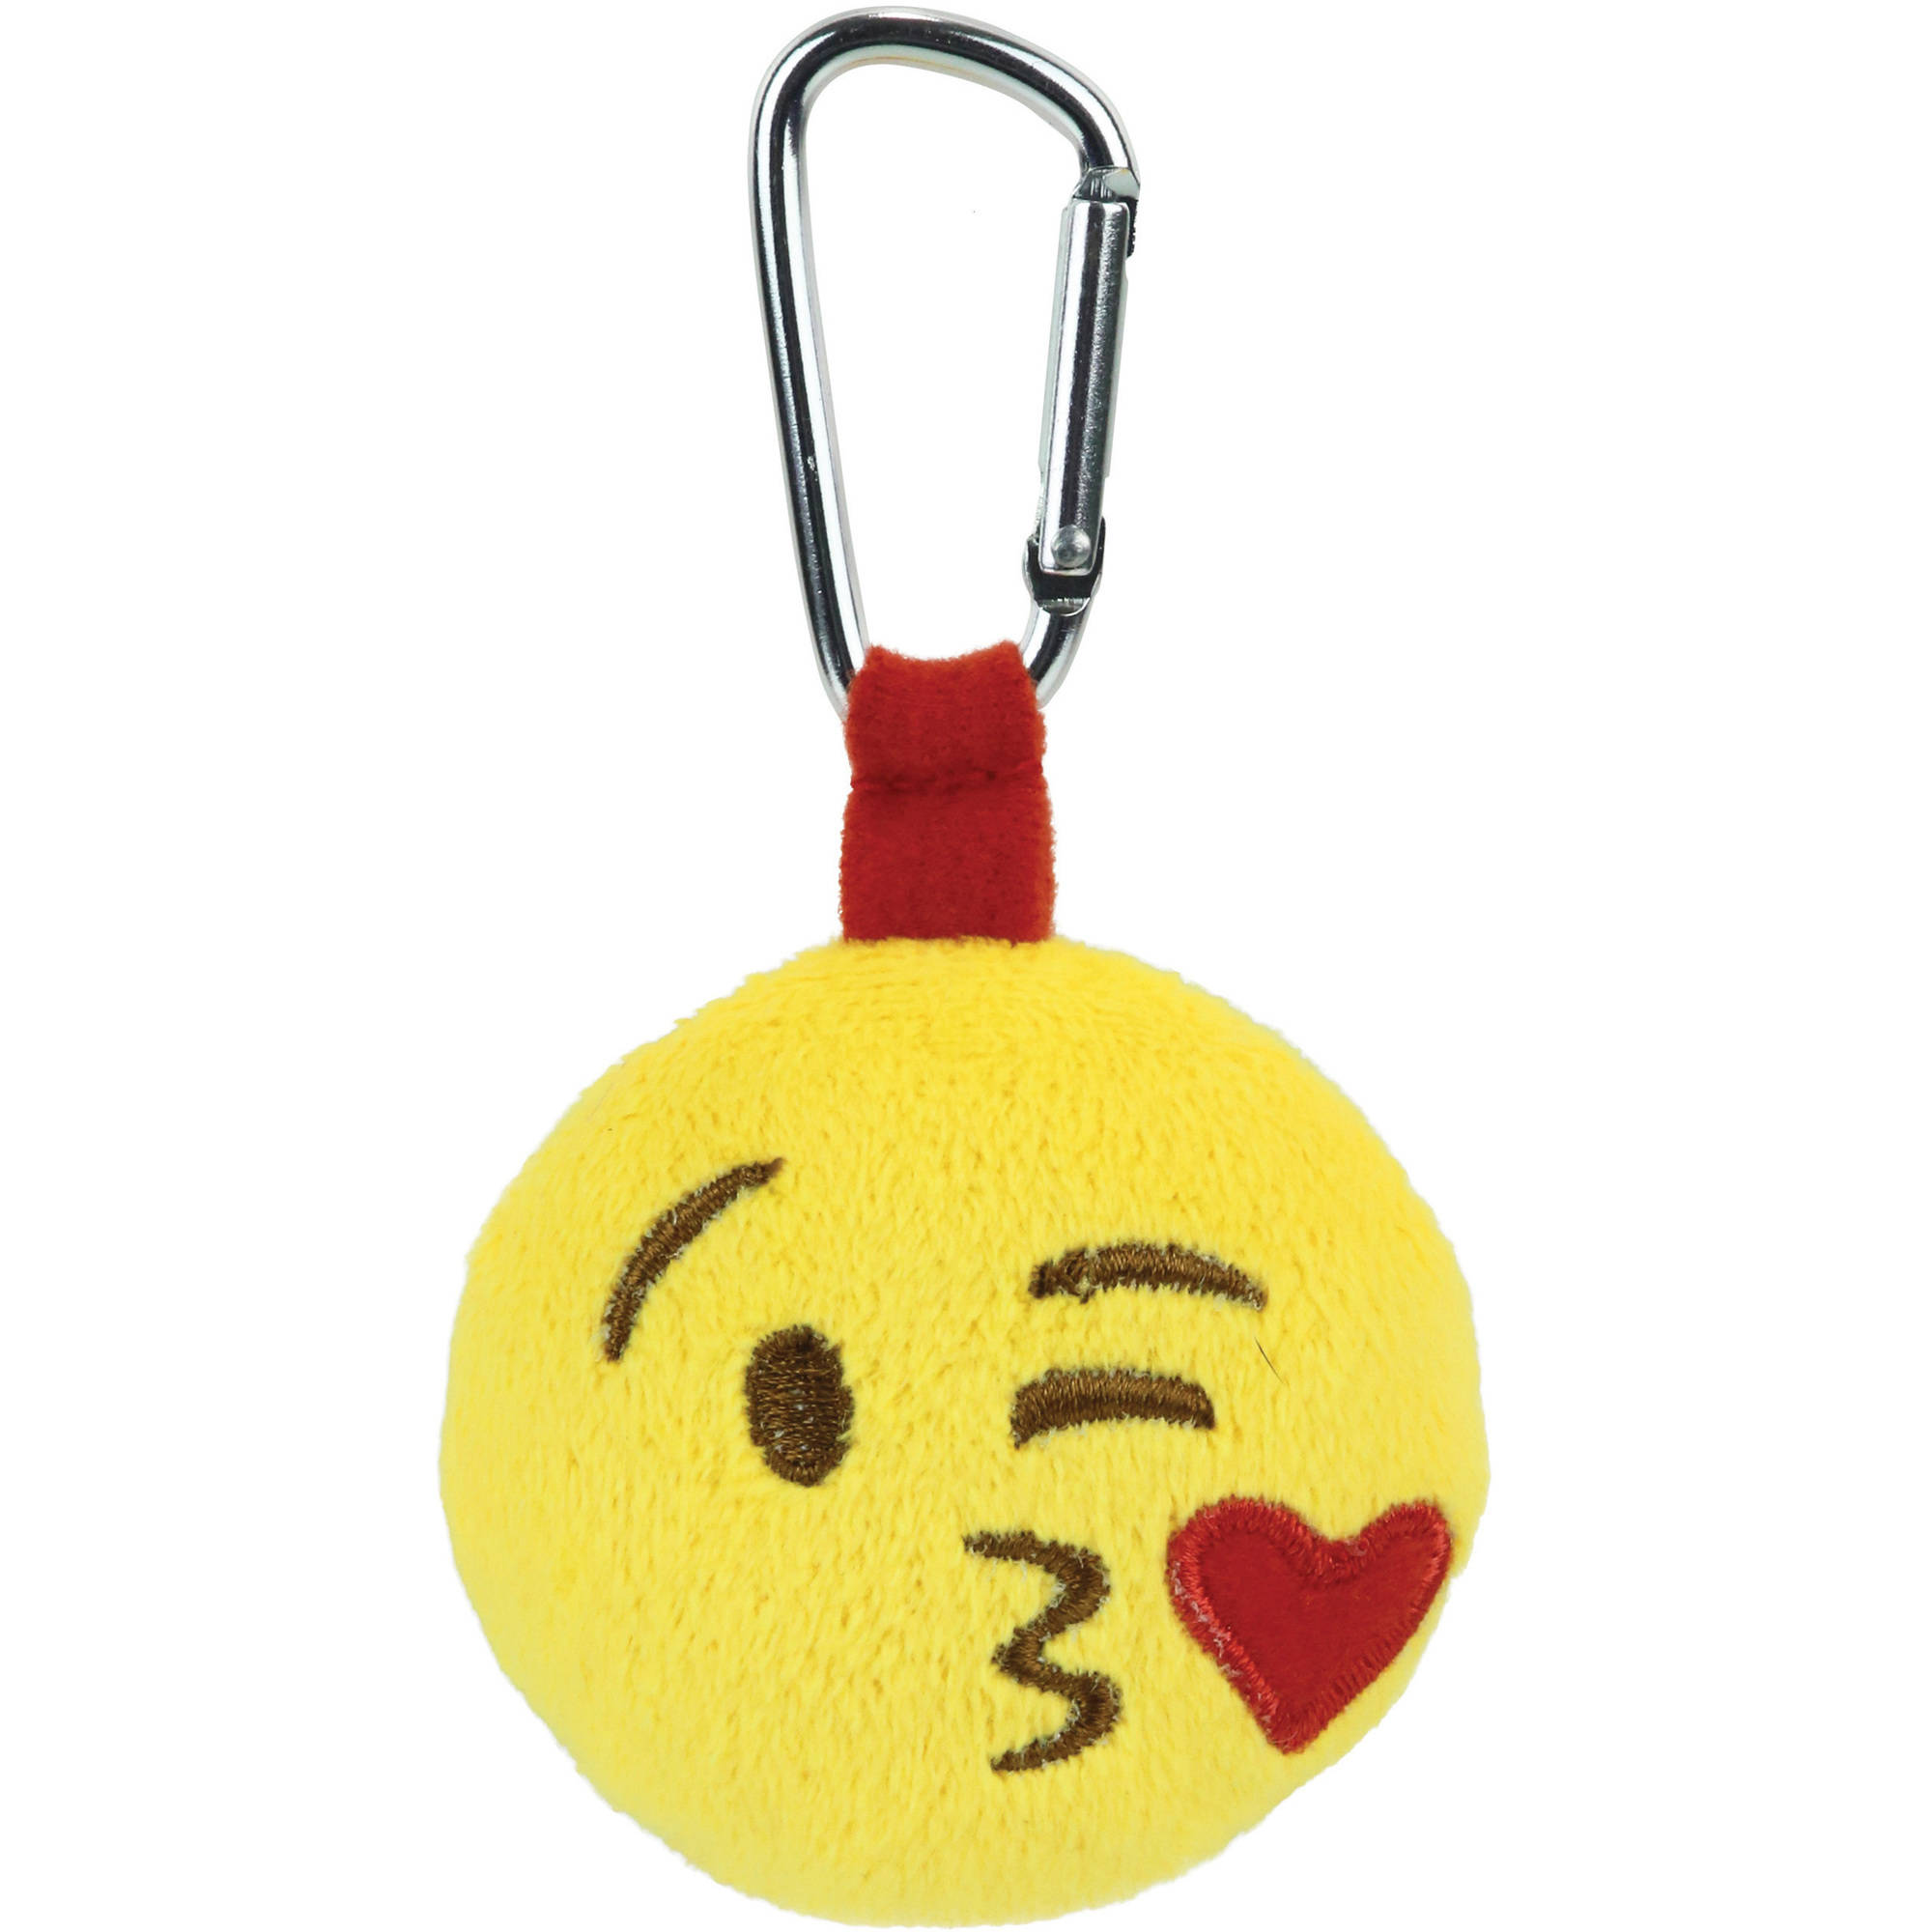 Emoji Backpack Clip, Face Throwing a Kiss